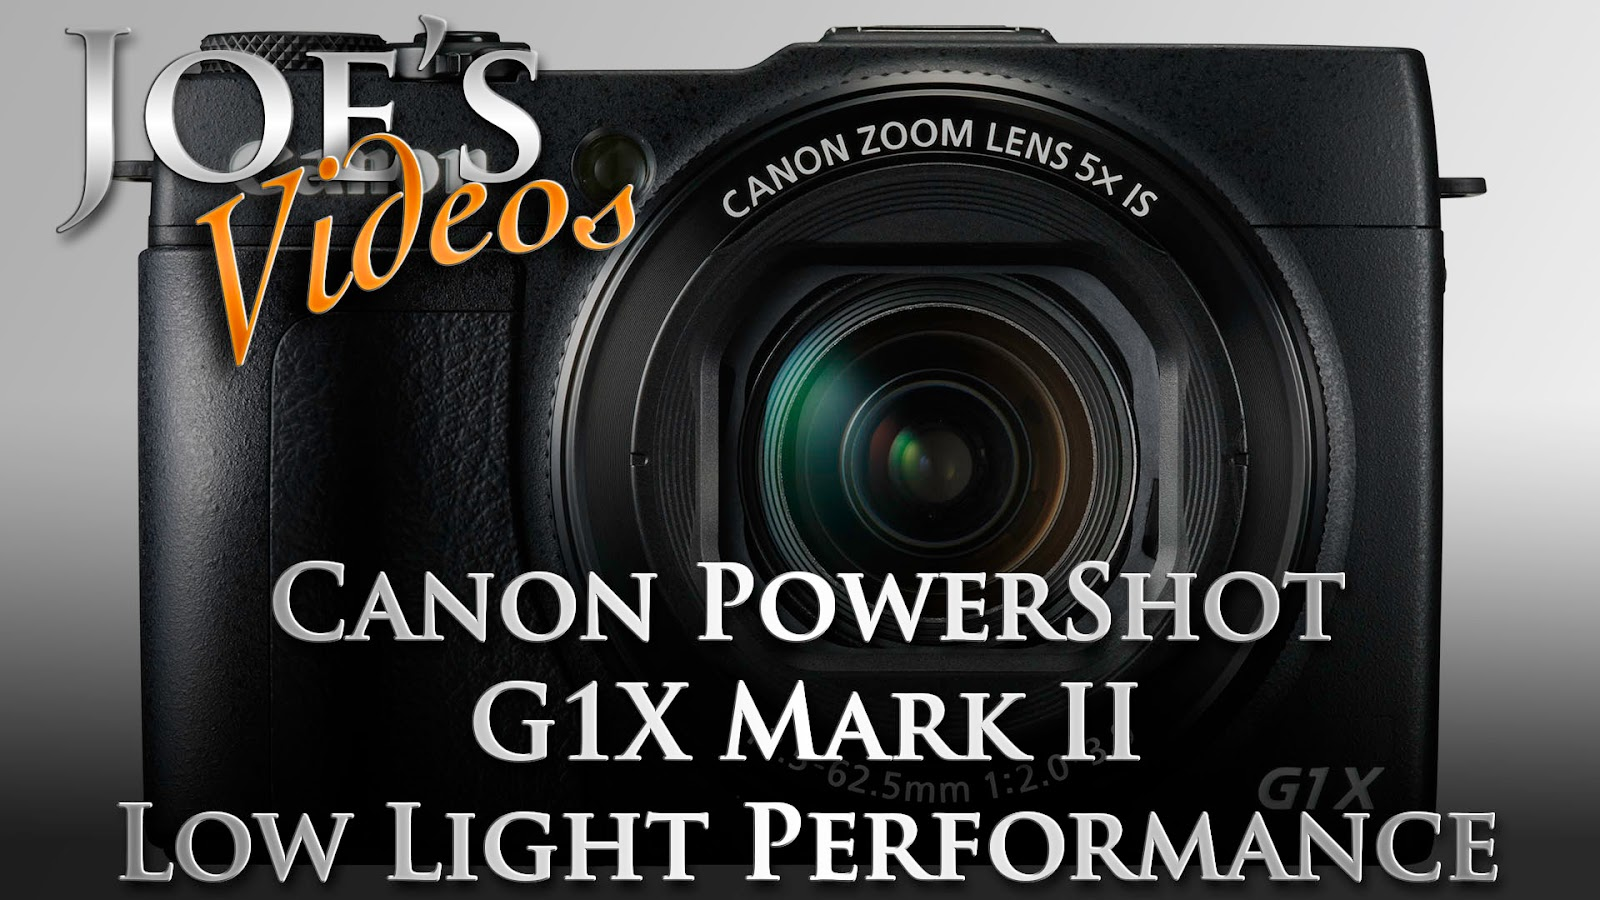 Canon PowerShot G1 X Mark II At A Glance, Low Light Performance In A Small Package | Joe's Videos